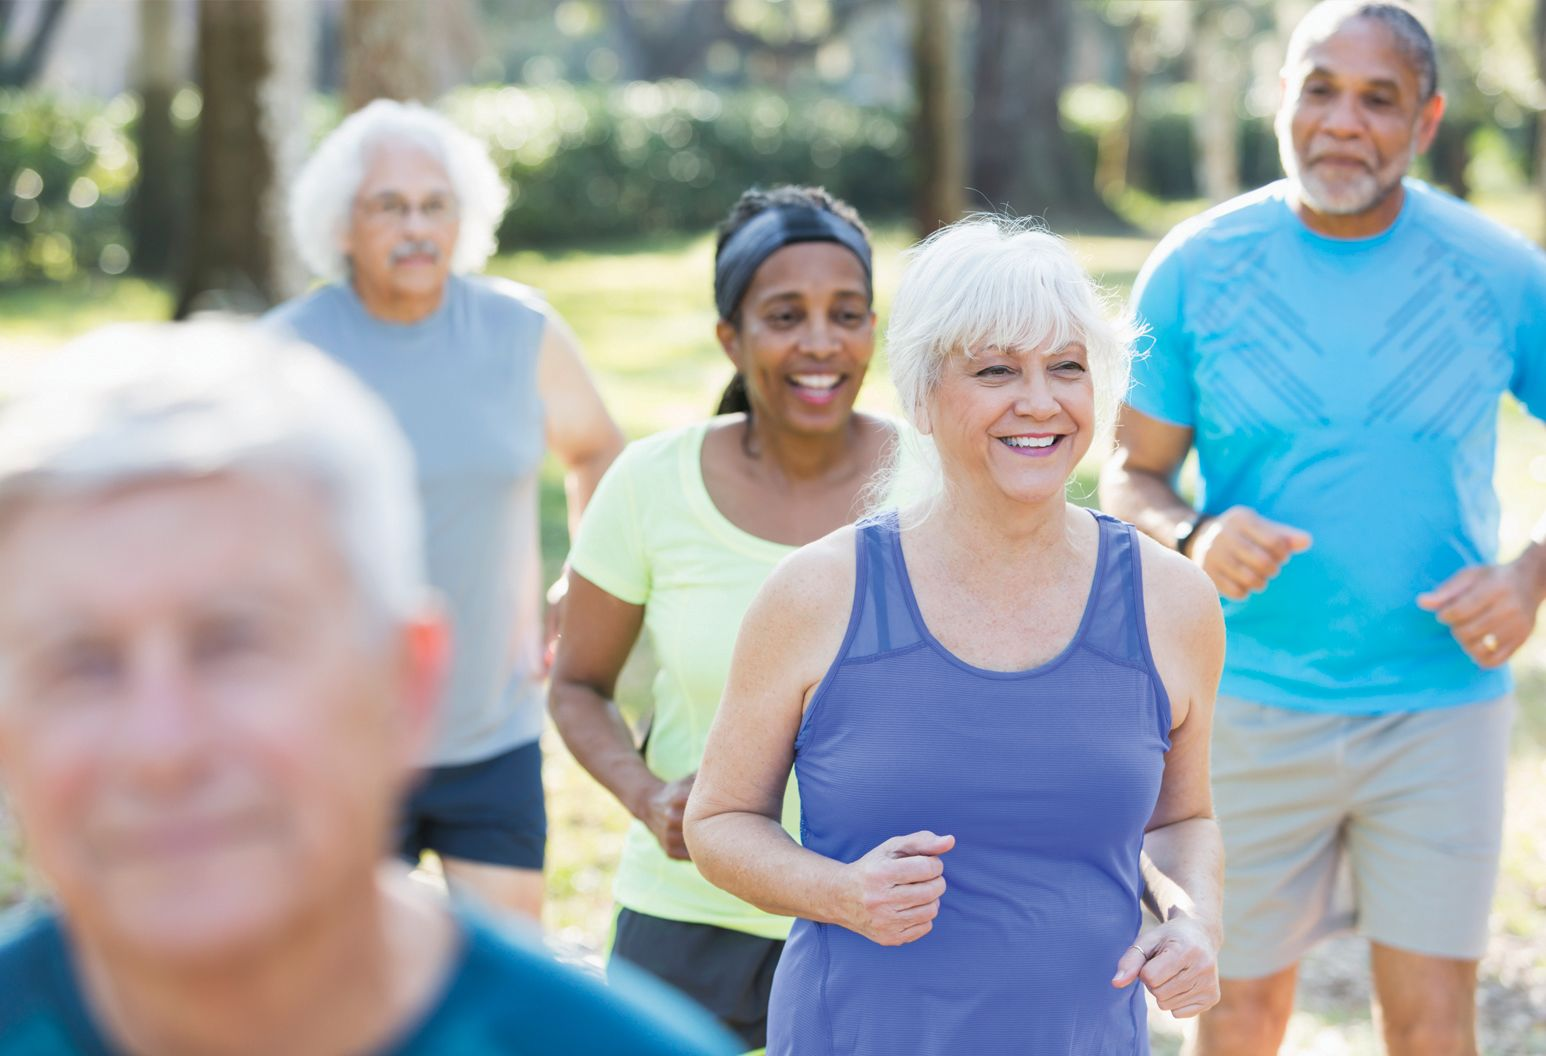 A group of elderly men and women are outside in a park exercising. They're wearing work out clothes, have their arms at their waists and are smiling.